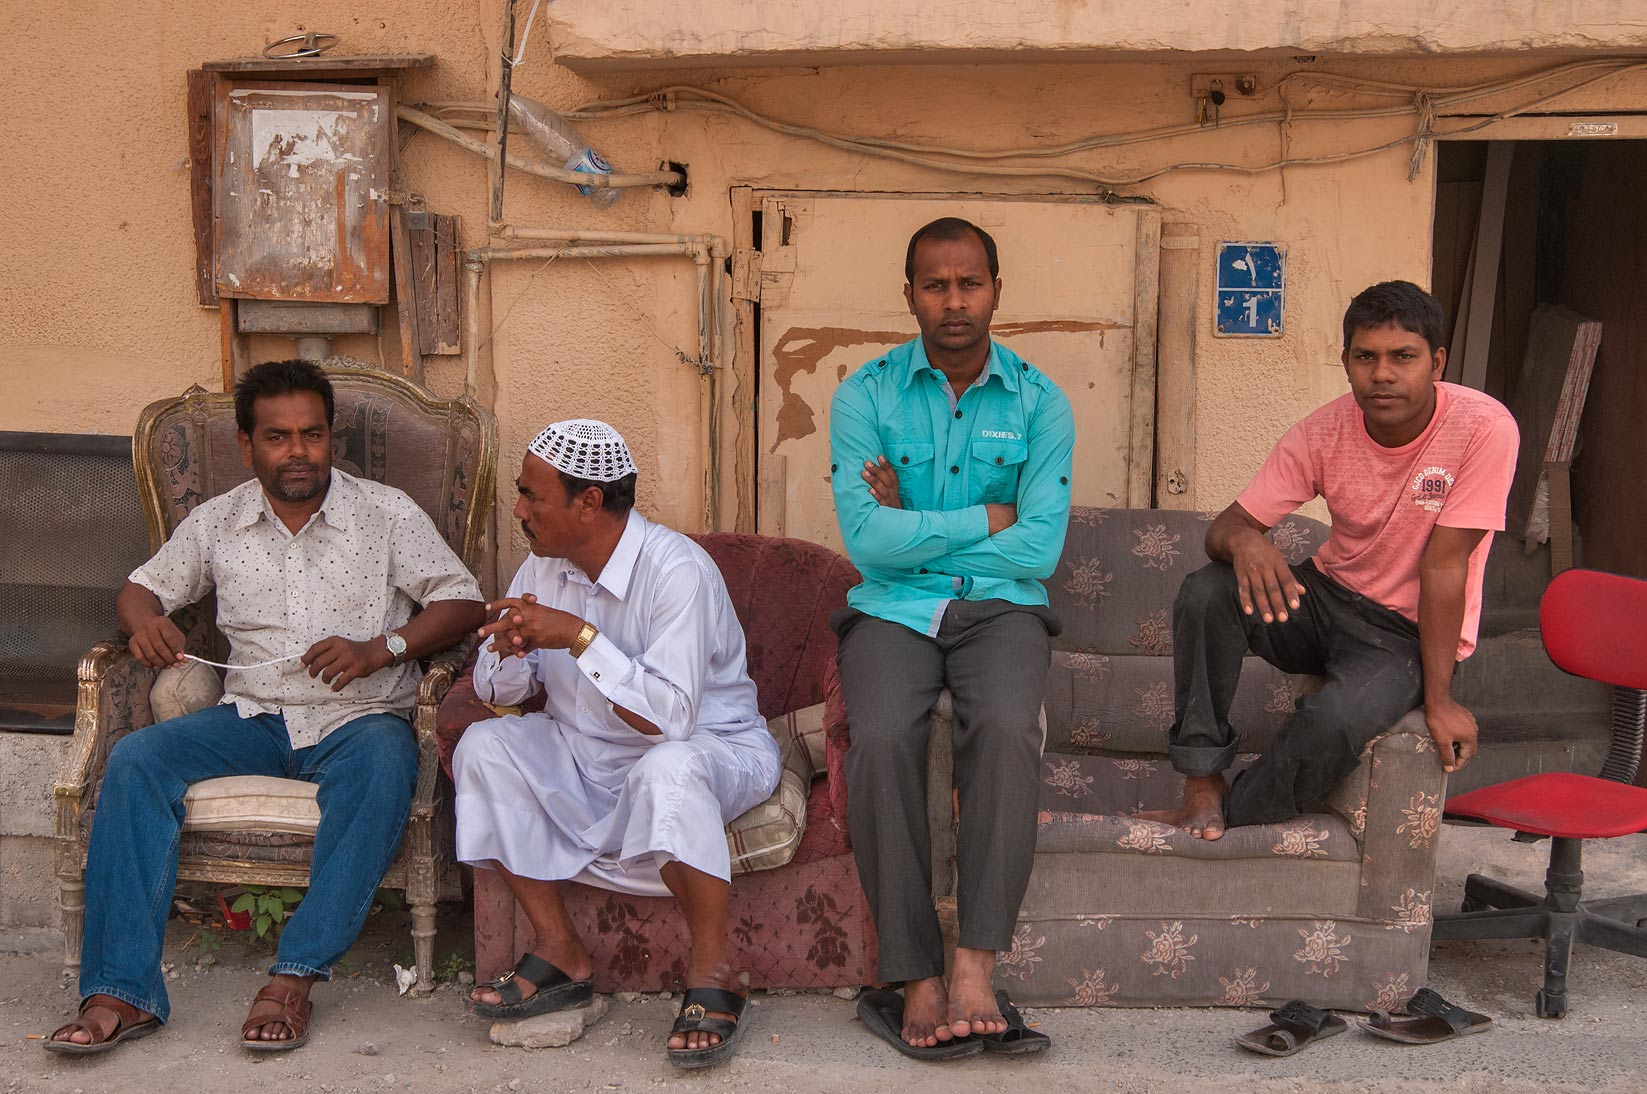 People meeting at Al Najada St., Musheirib area. Doha, Qatar